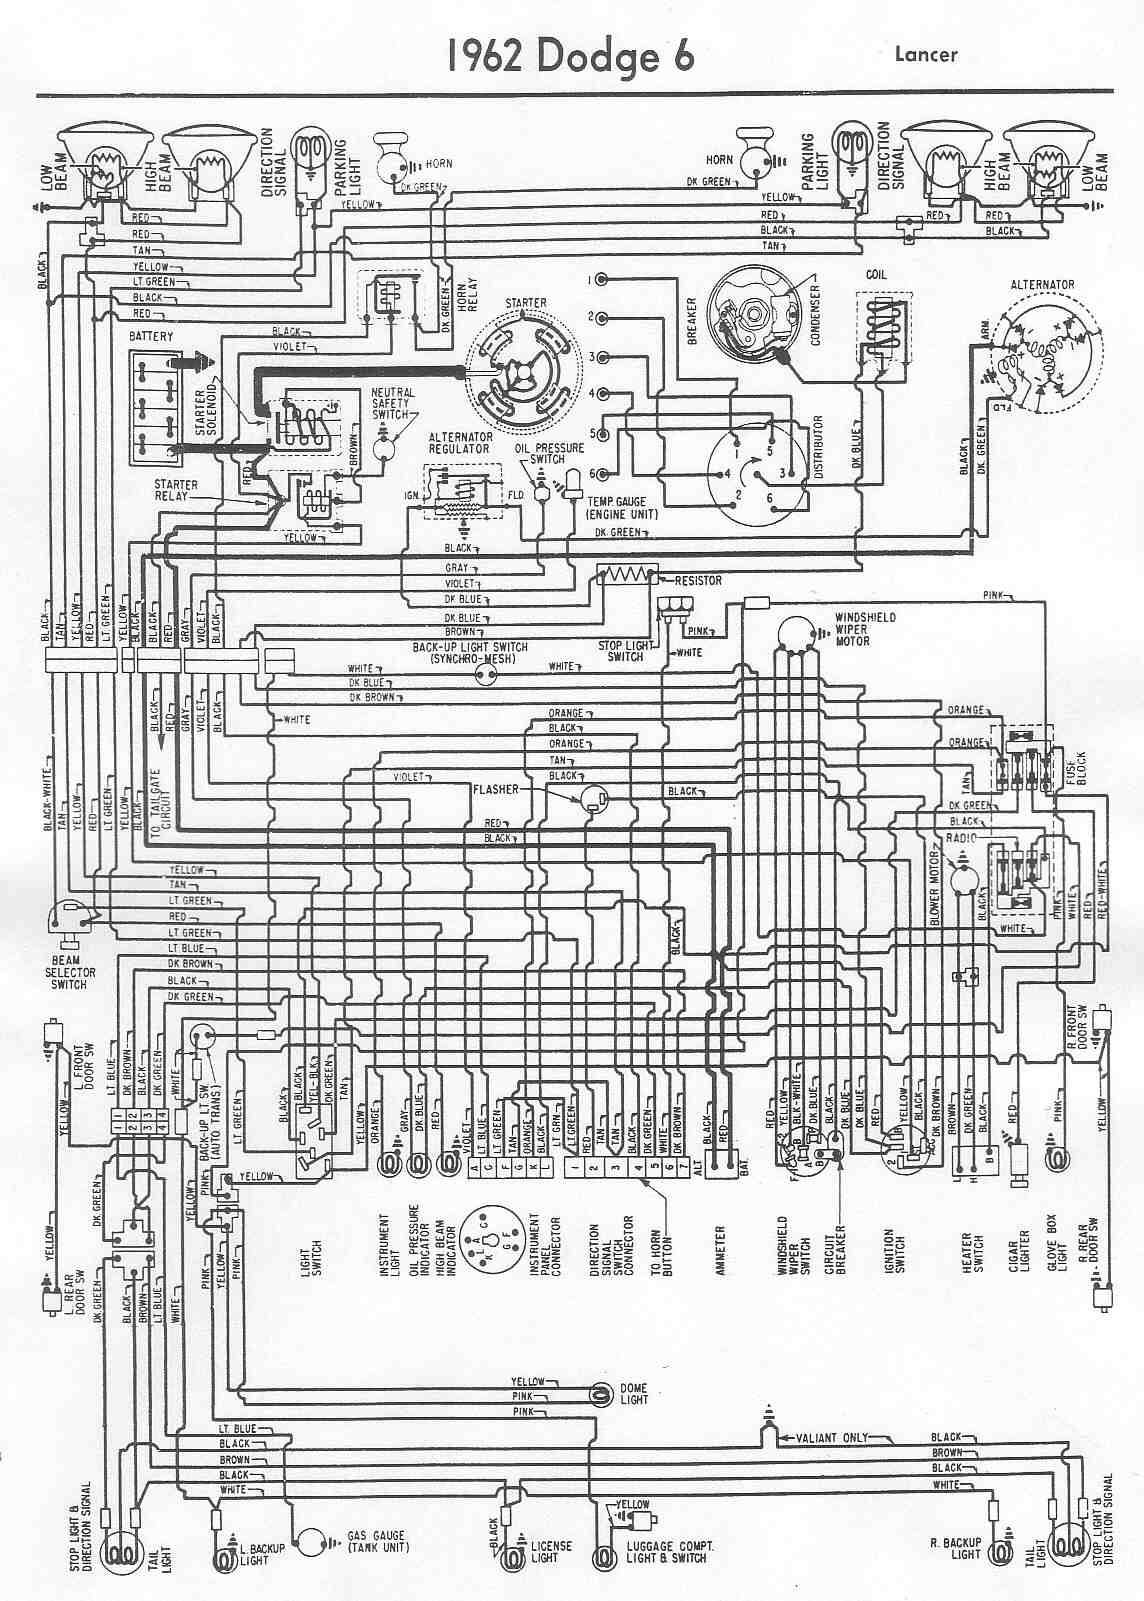 1968 Ford Truck Wire Schematic Drawing Block Wiring Diagram 1975 F100 Excellent For A 1966 Dodge D100 Images Best Image Binvm Us